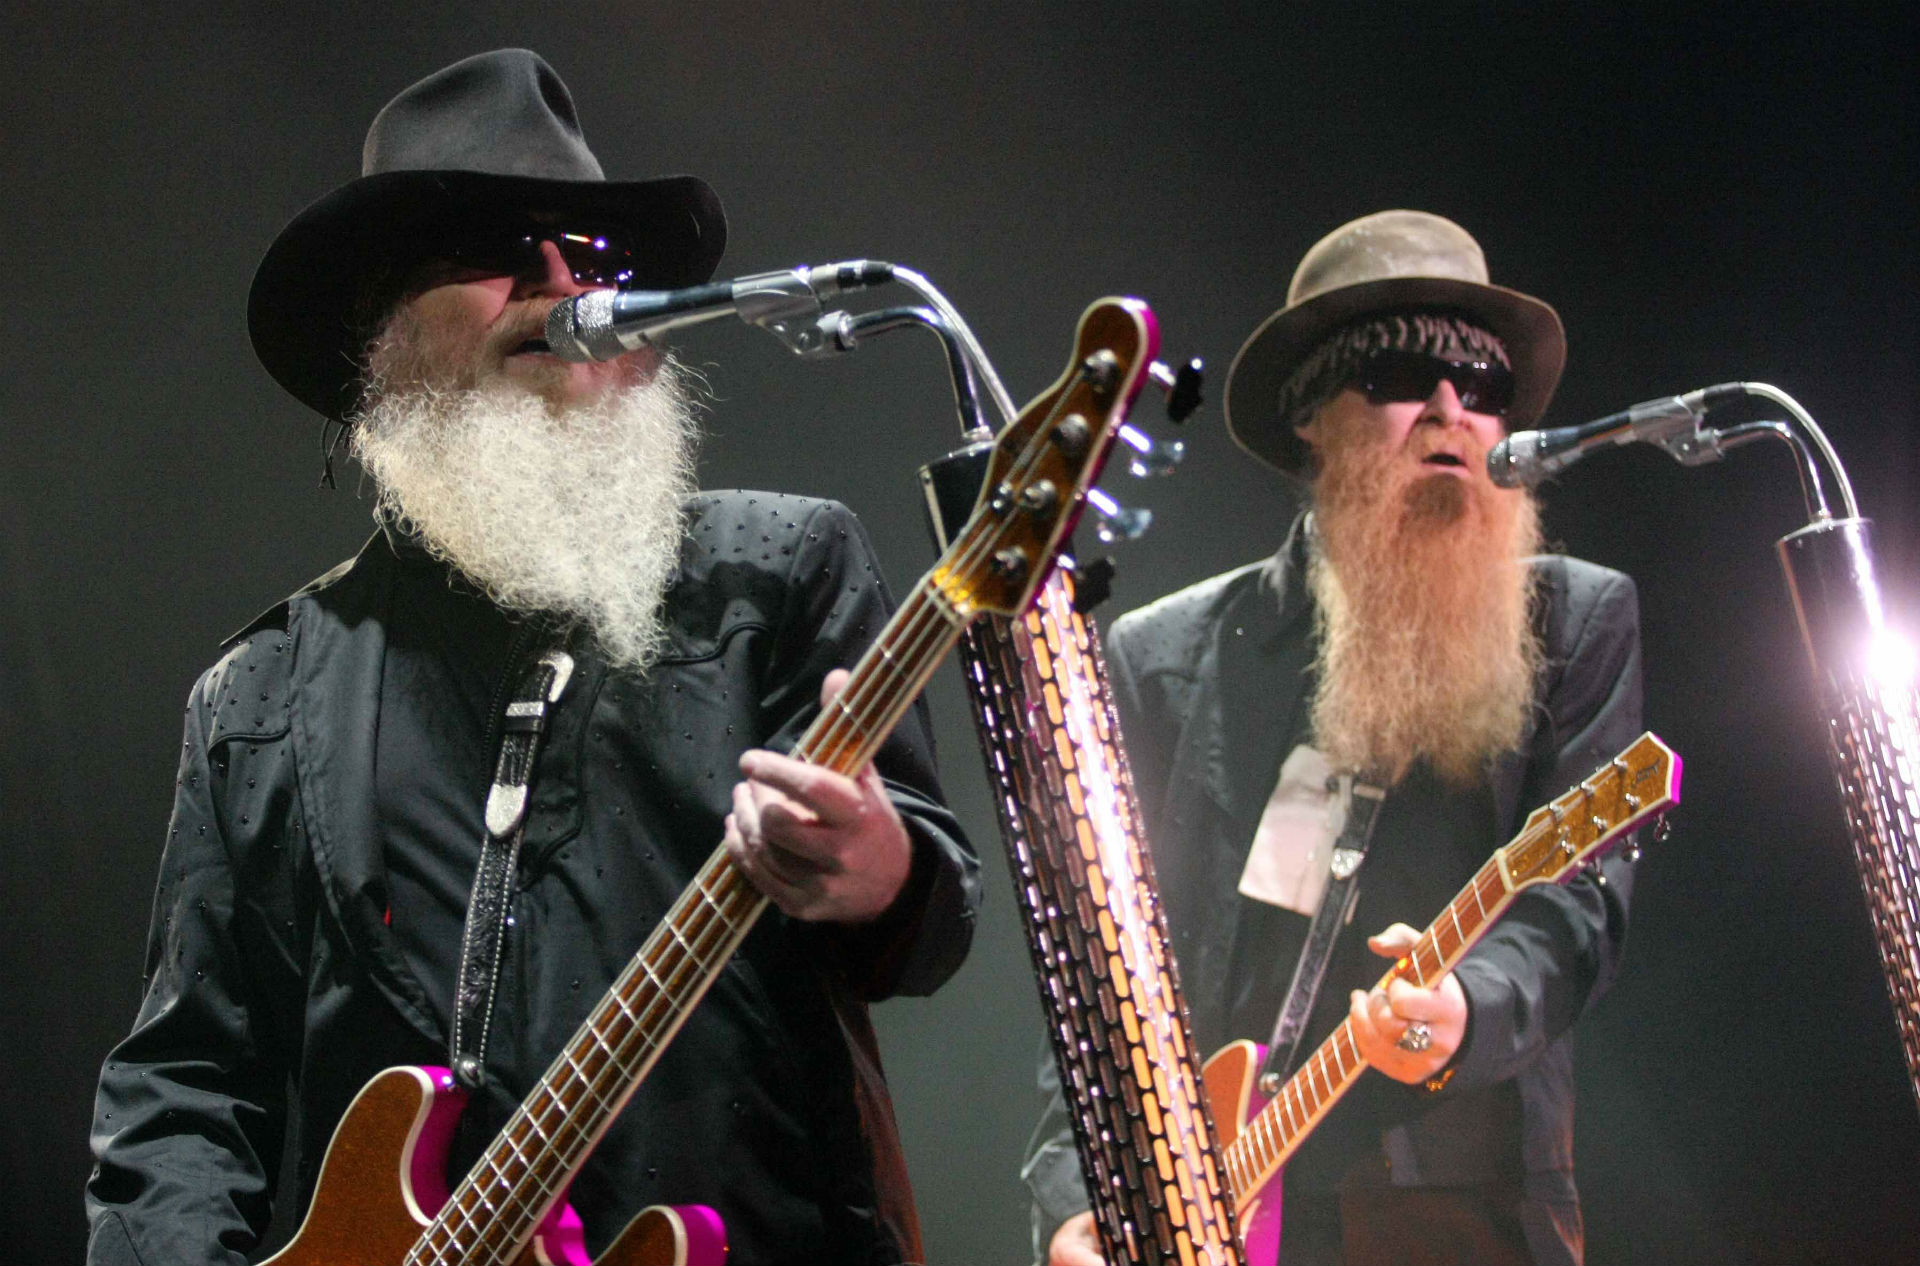 Zz Top Computer Wallpapers, Desktop Backgrounds 1920x1266 Id: 406215